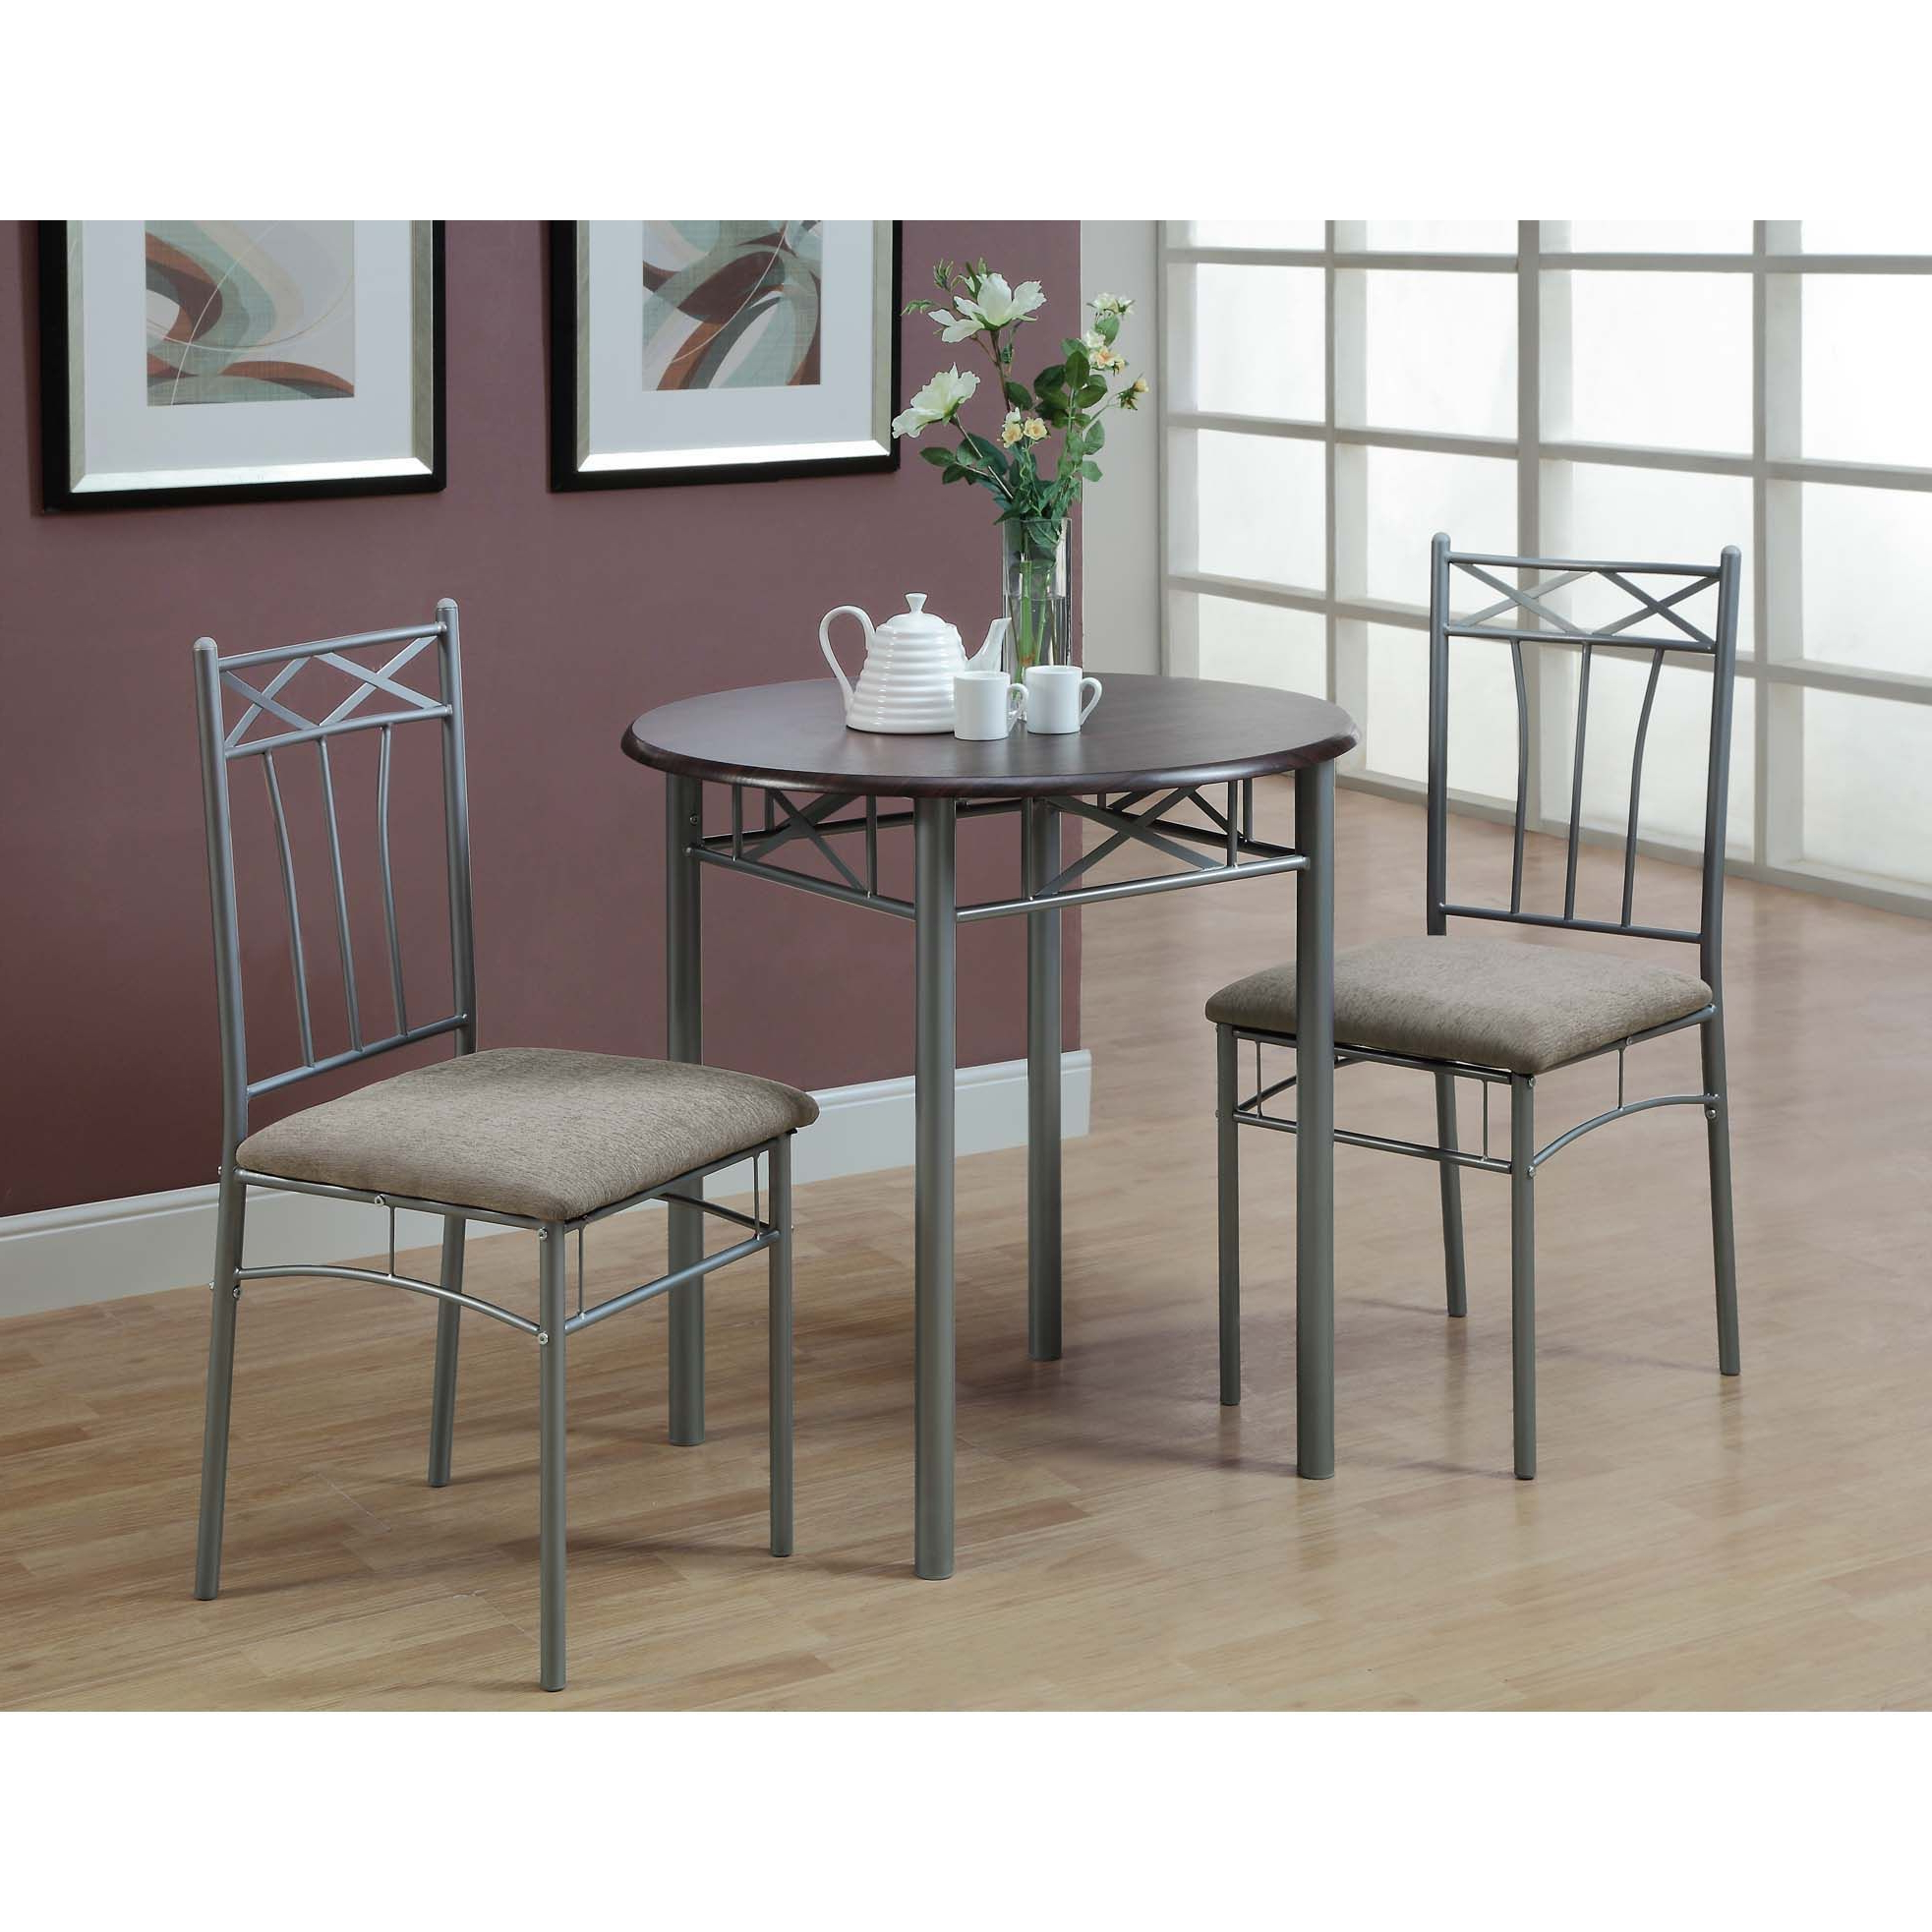 Cappuccino/ Silver Metal 3 Piece Bistro Table Set – Overstock In Most Current Bearden 3 Piece Dining Sets (View 22 of 25)